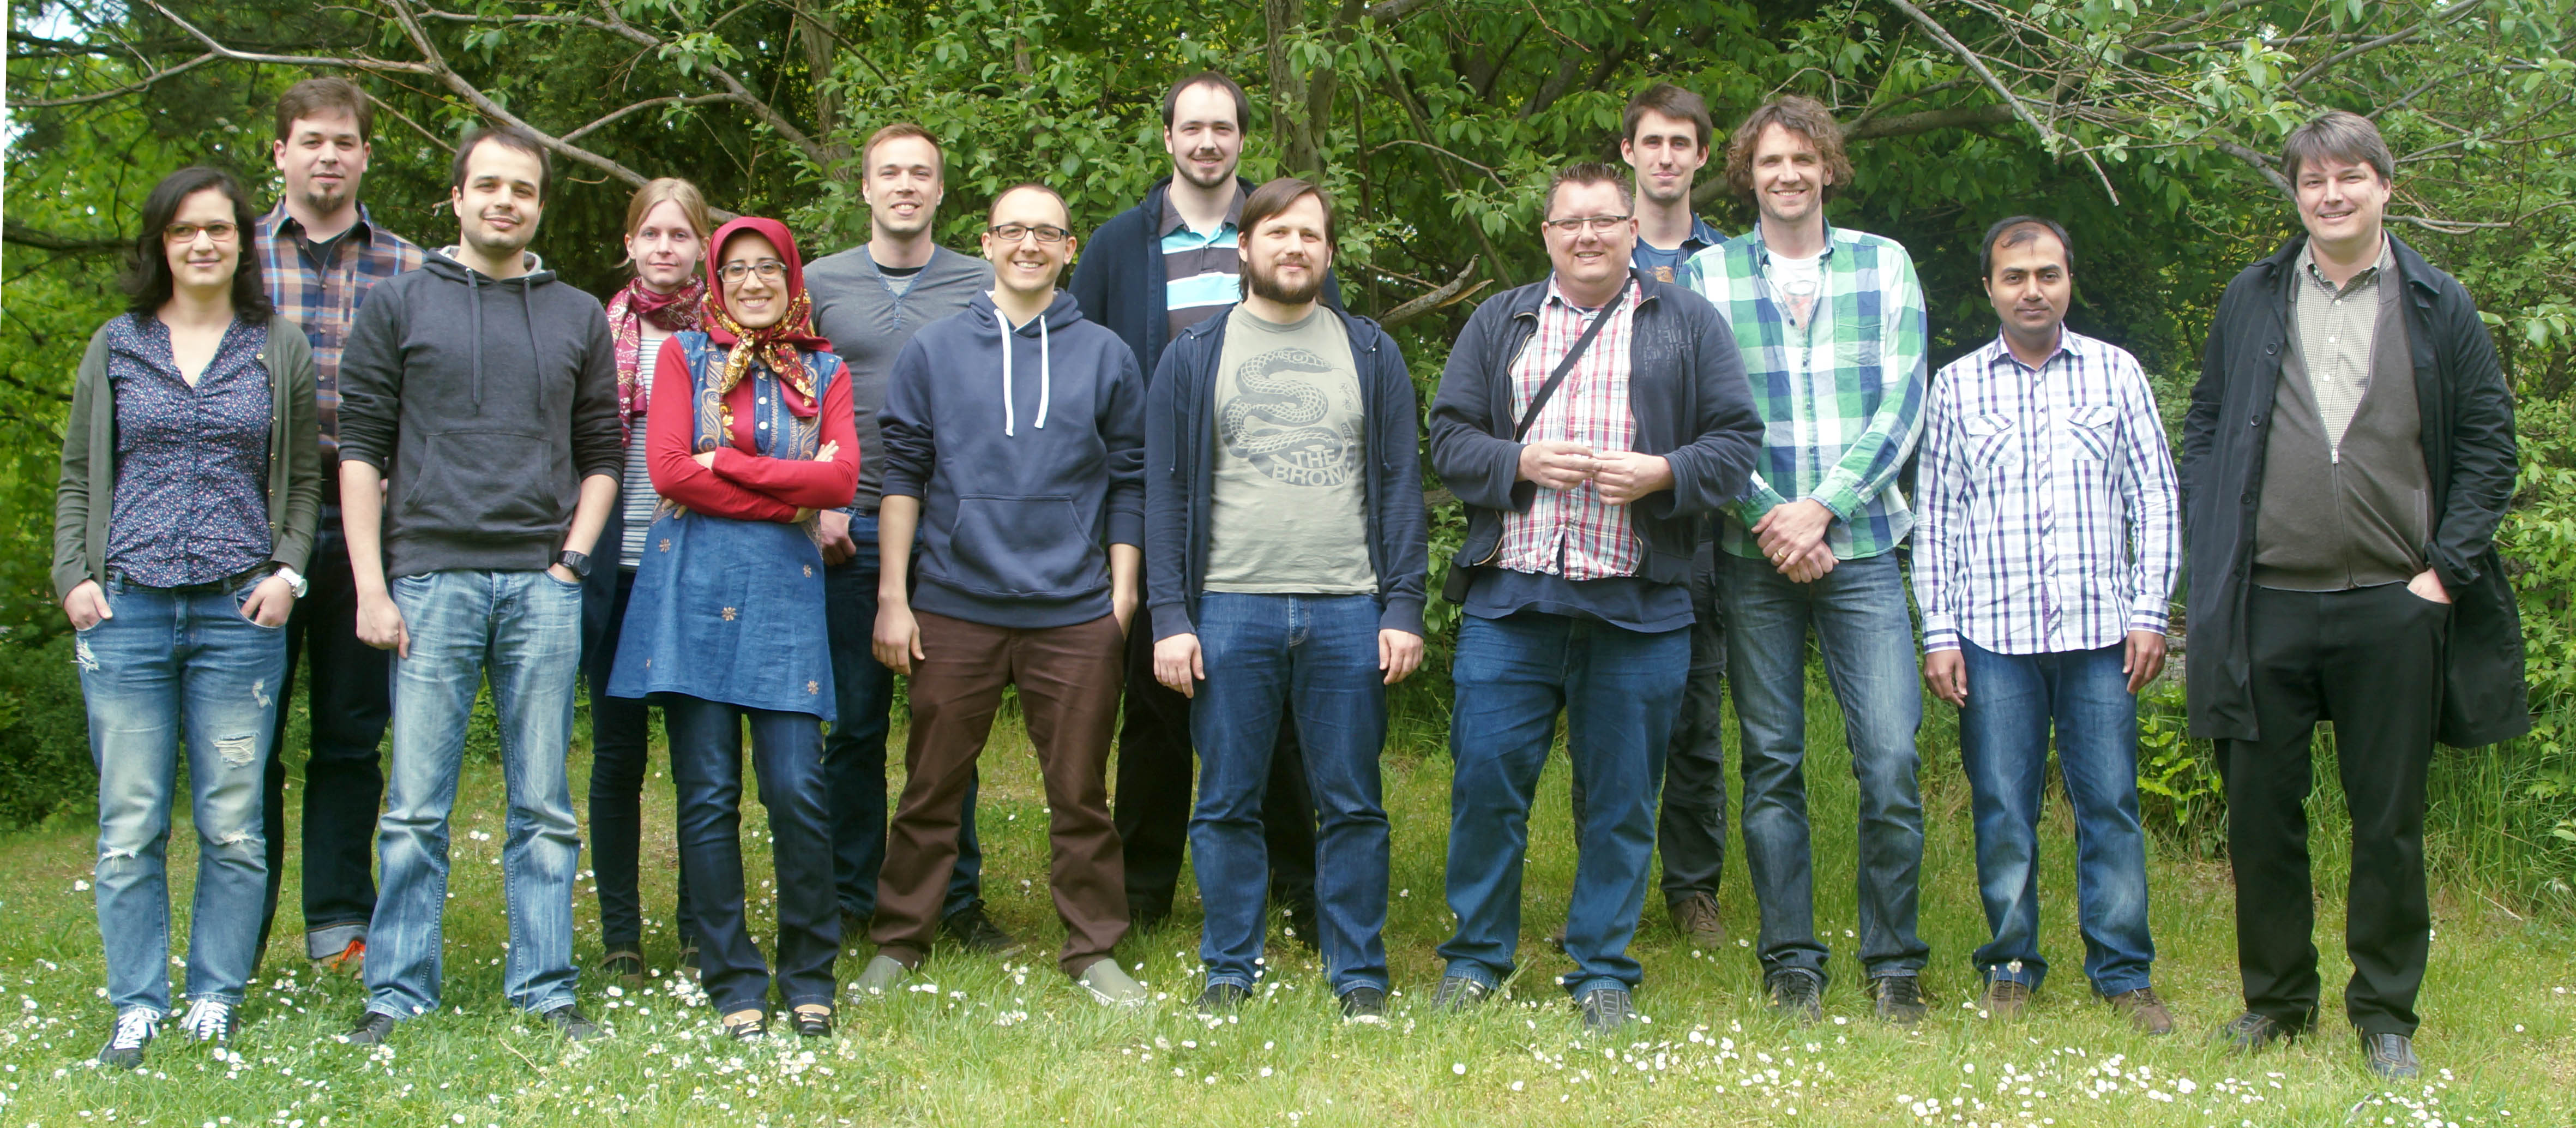 The members of the research group Data Mining